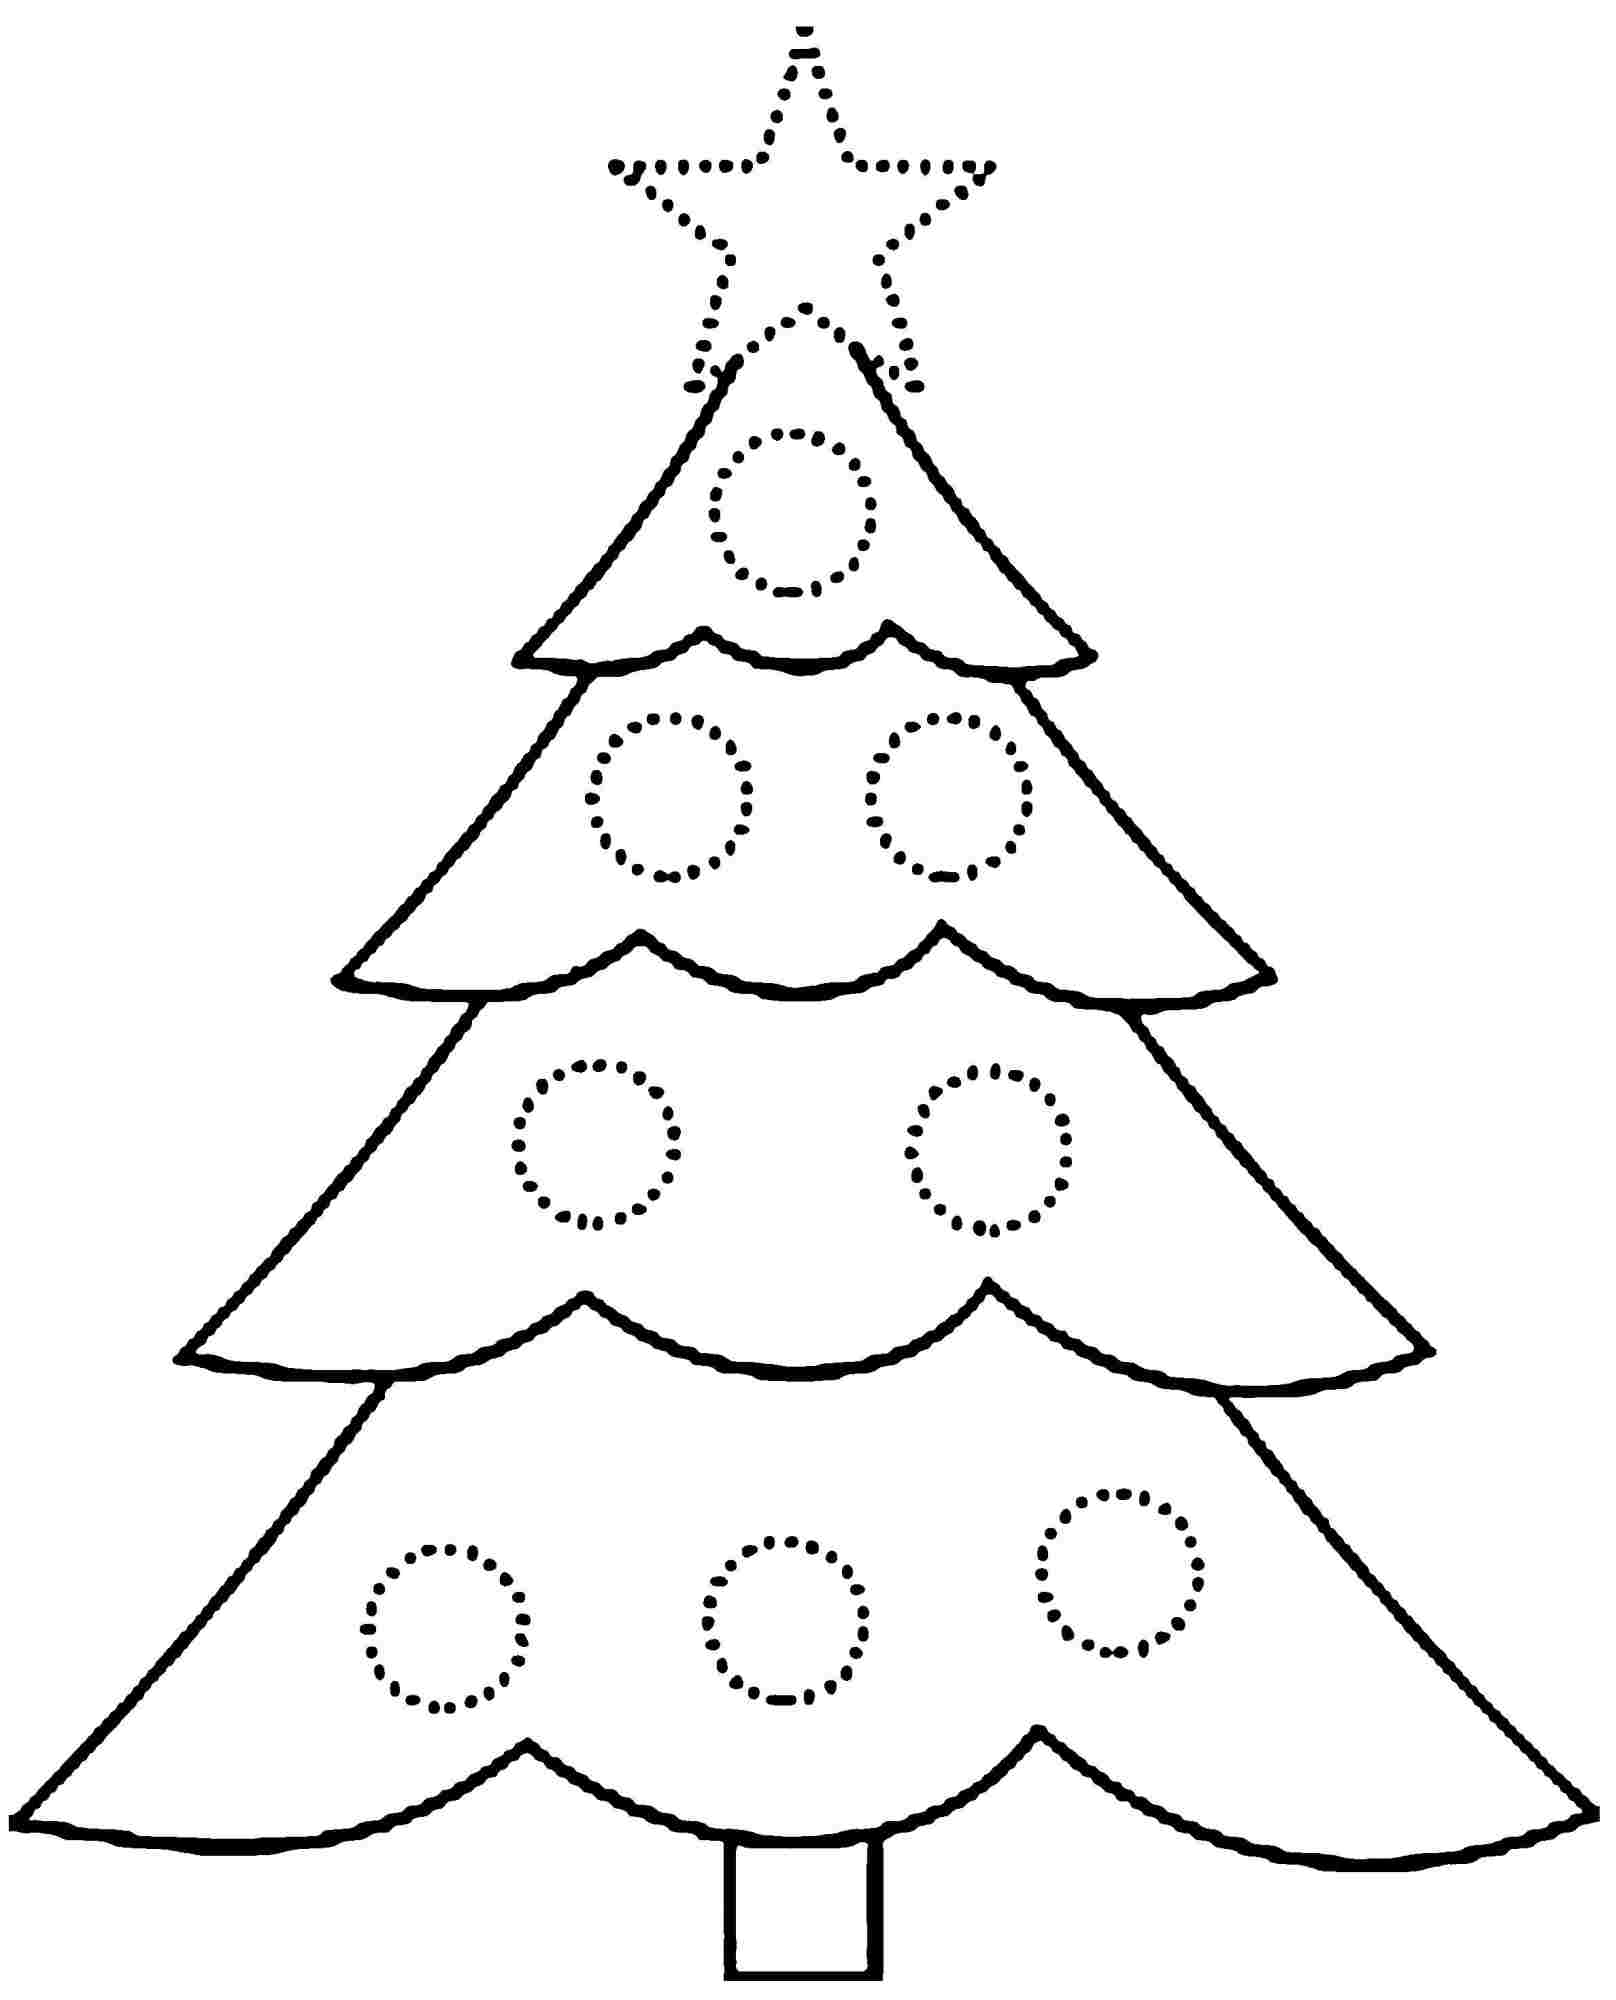 free christmas tree coloring pages printable - free printable christmas tree coloring page coloring home